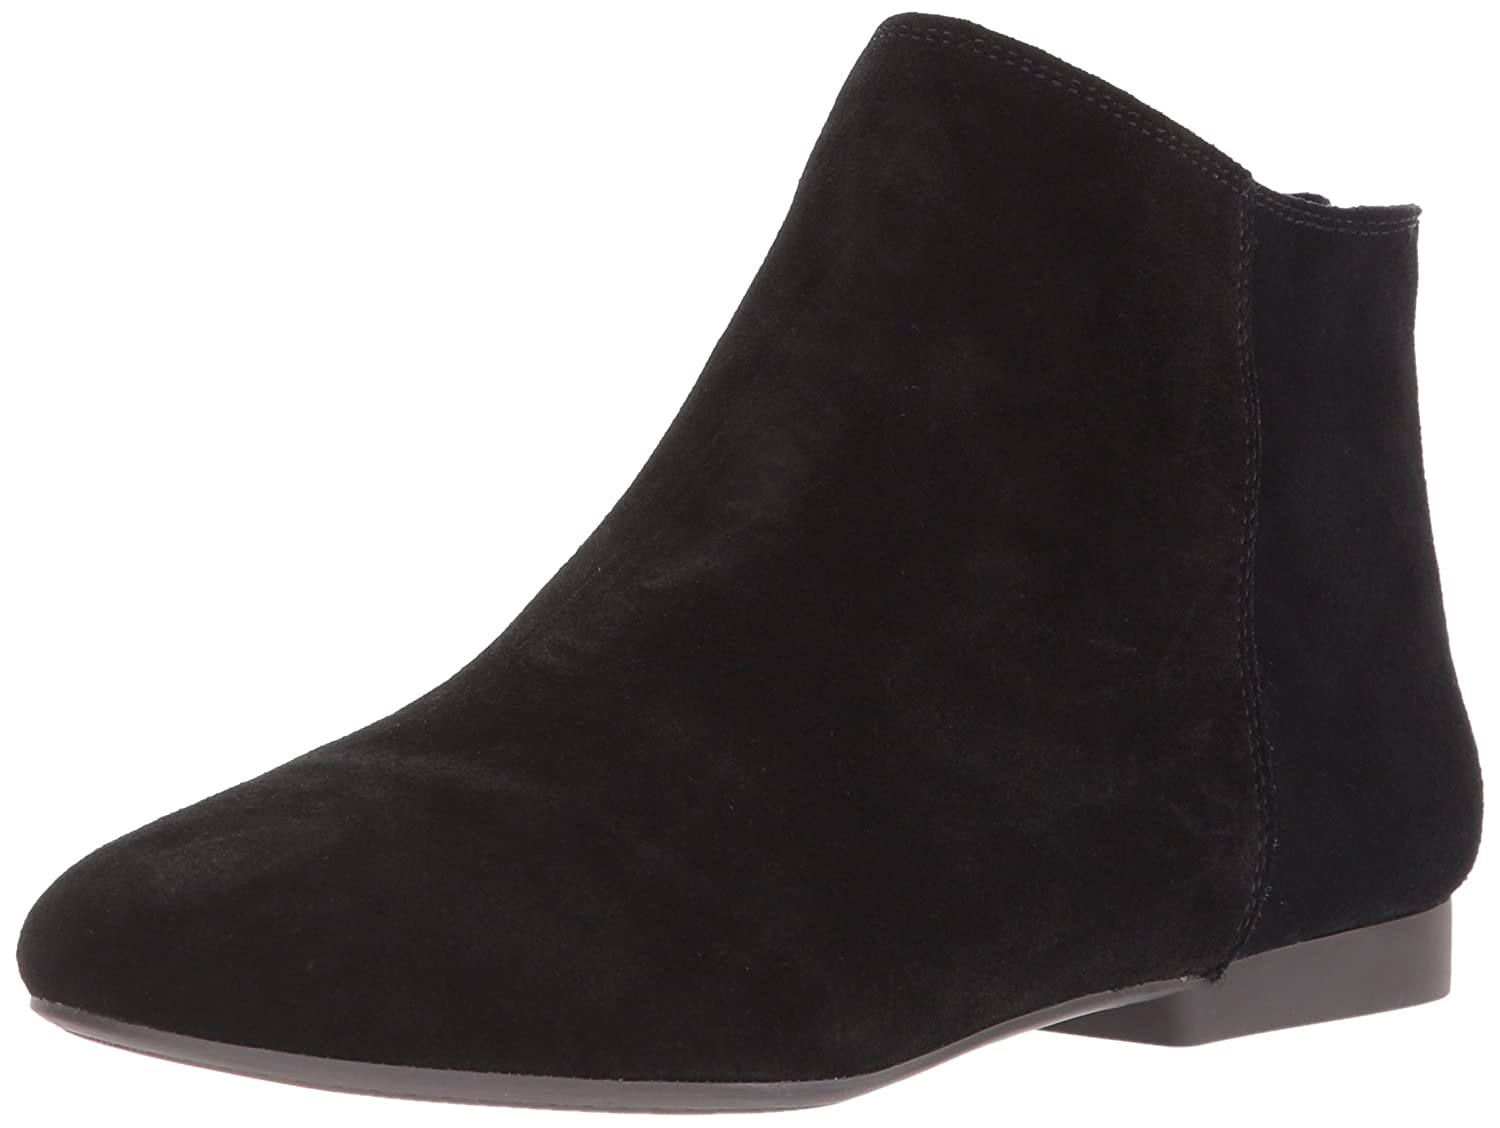 Lucky Brand Women's Gaines Ankle Boot B071D66BS5 8 M US|Black